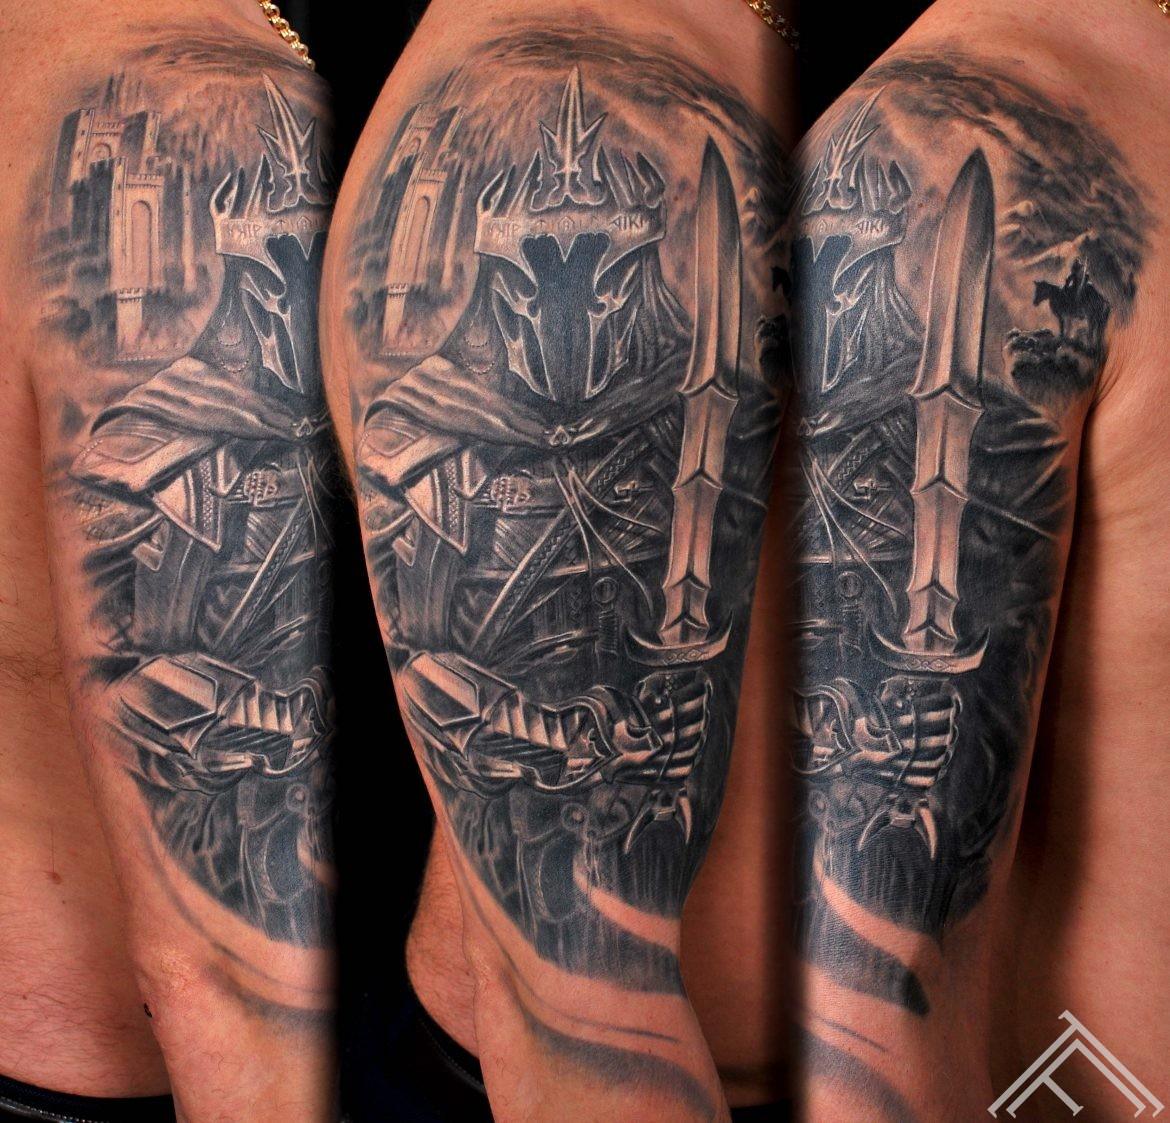 warior_fantasy_tattoo_tattoofrequency_art_marispavlo_normalsize